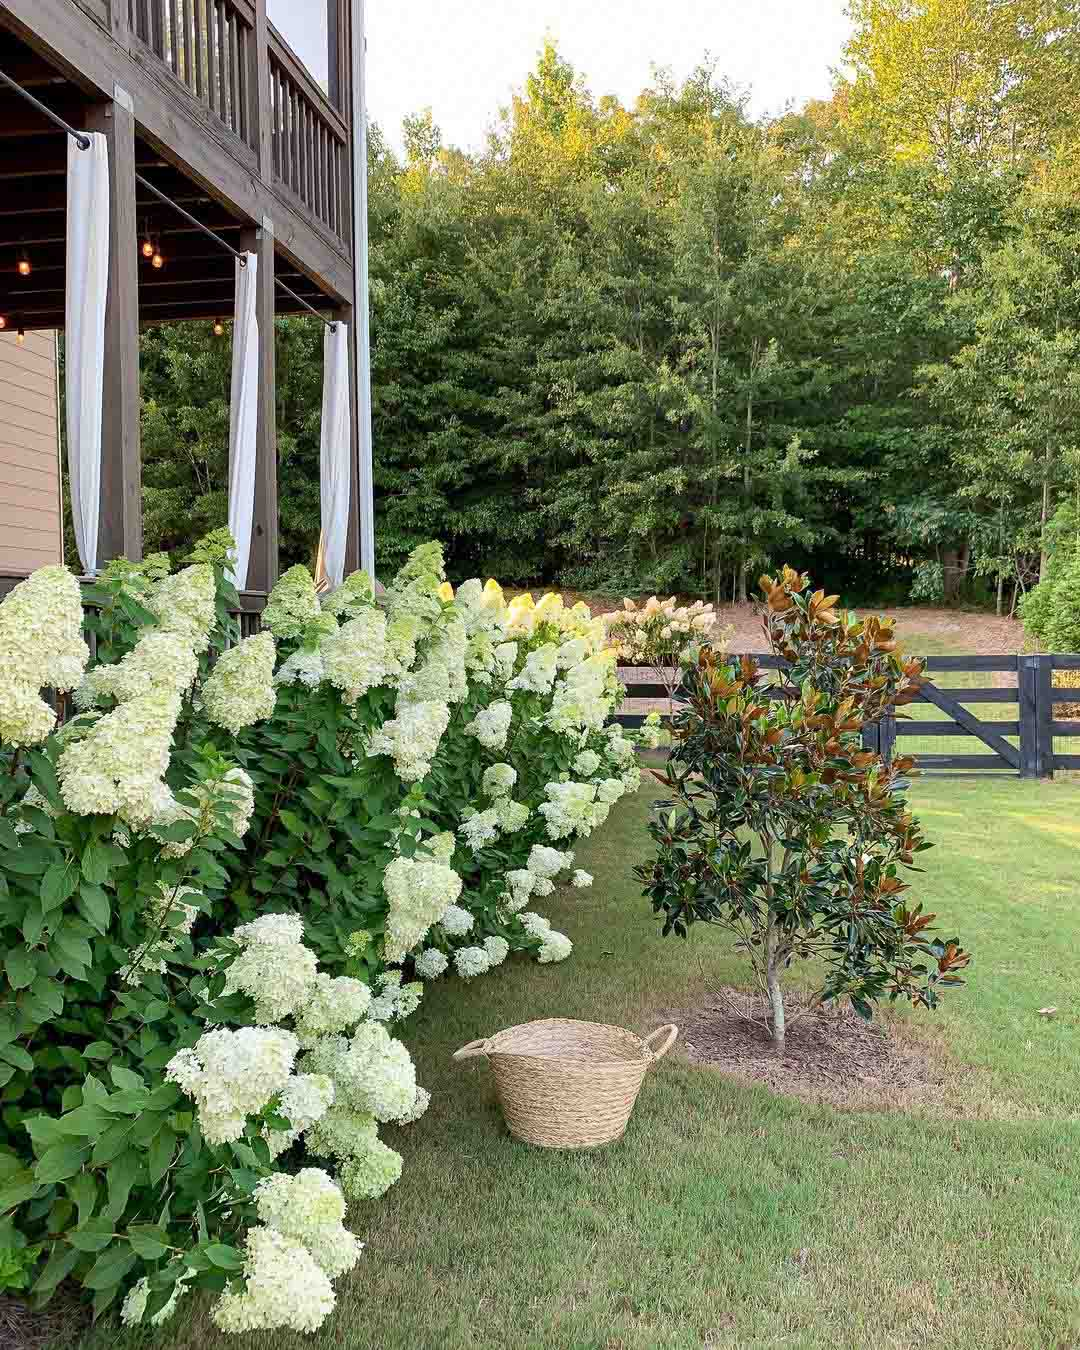 How to care for limelight hydrangeas